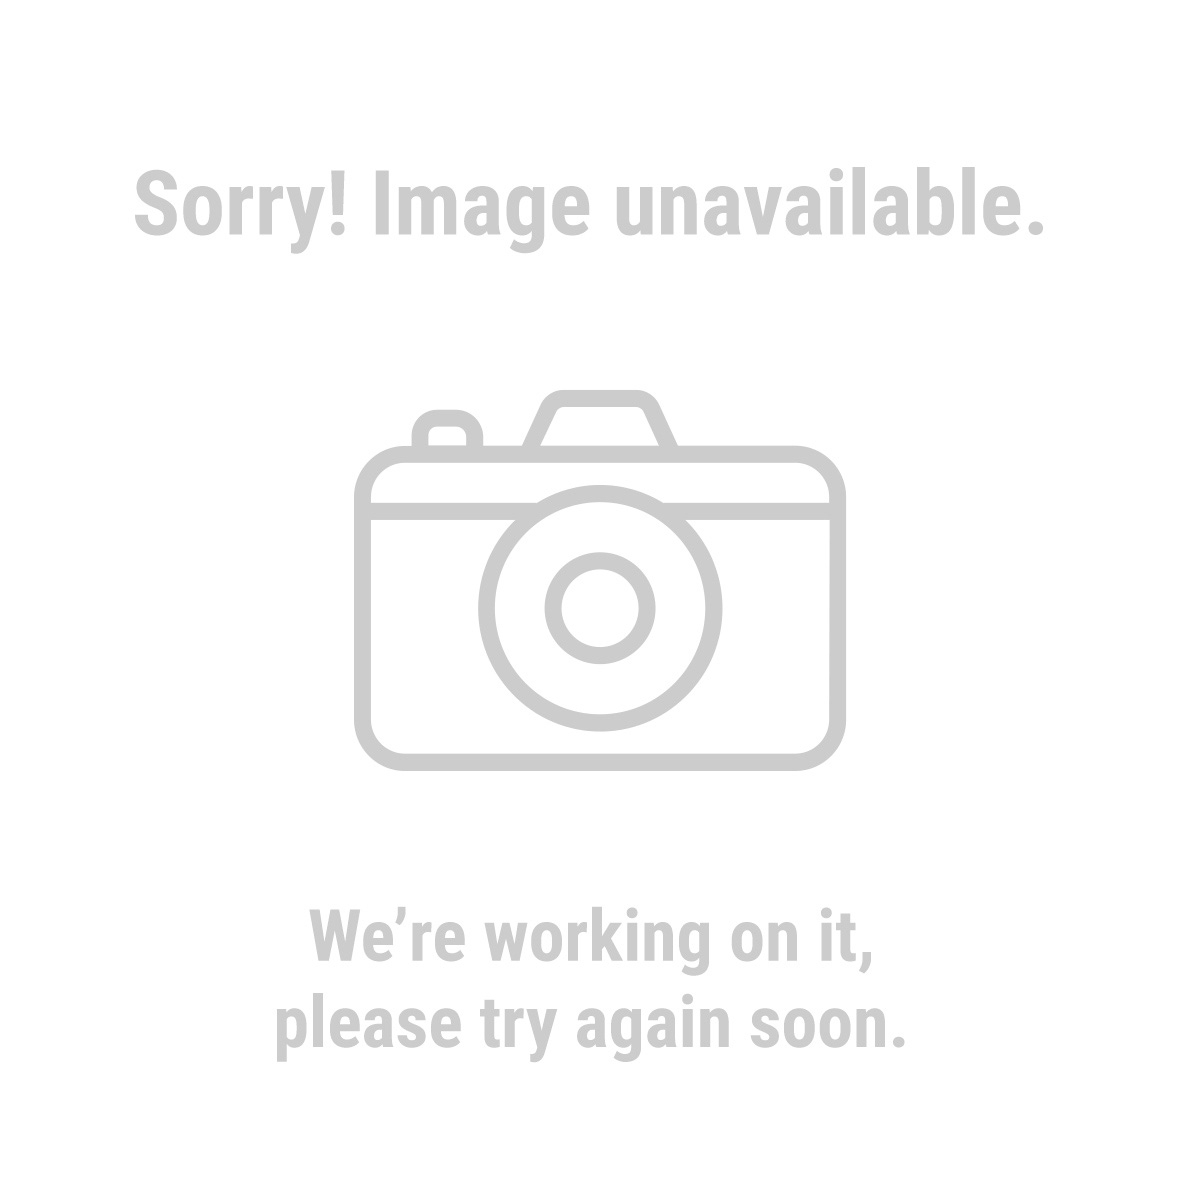 "Ship to Shore 44705 12"" Cast Iron Dutch Oven"